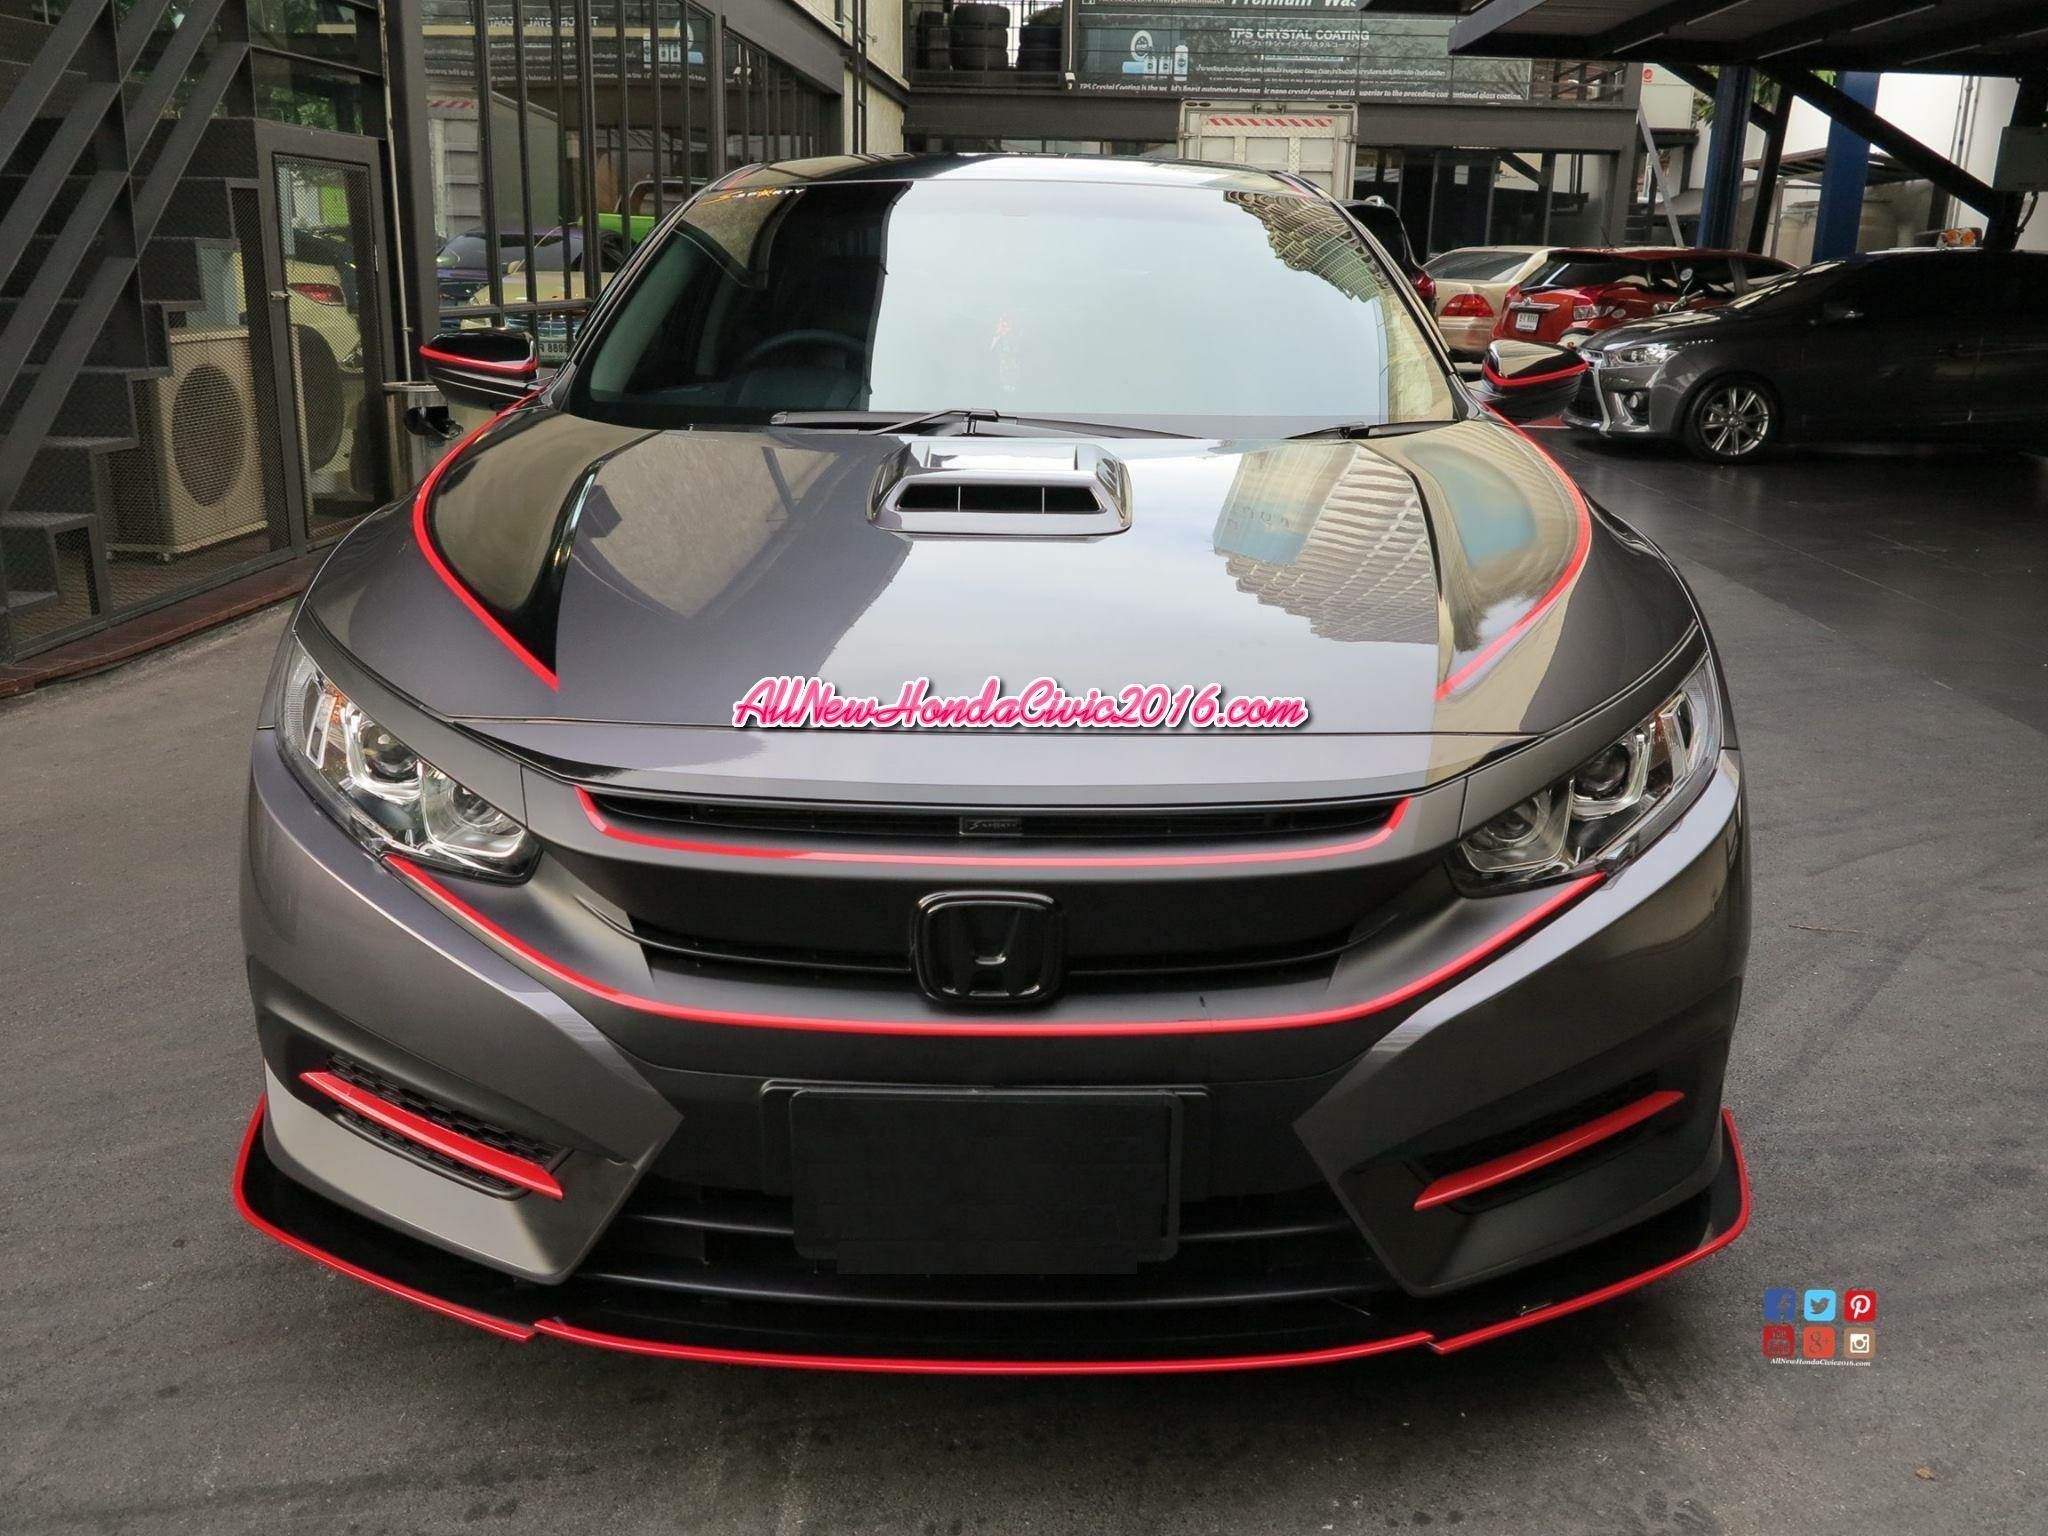 Pin By Hayley Teneyck On All About The Civi S Honda Civic Honda Civic Type R Civic Hatchback 2017